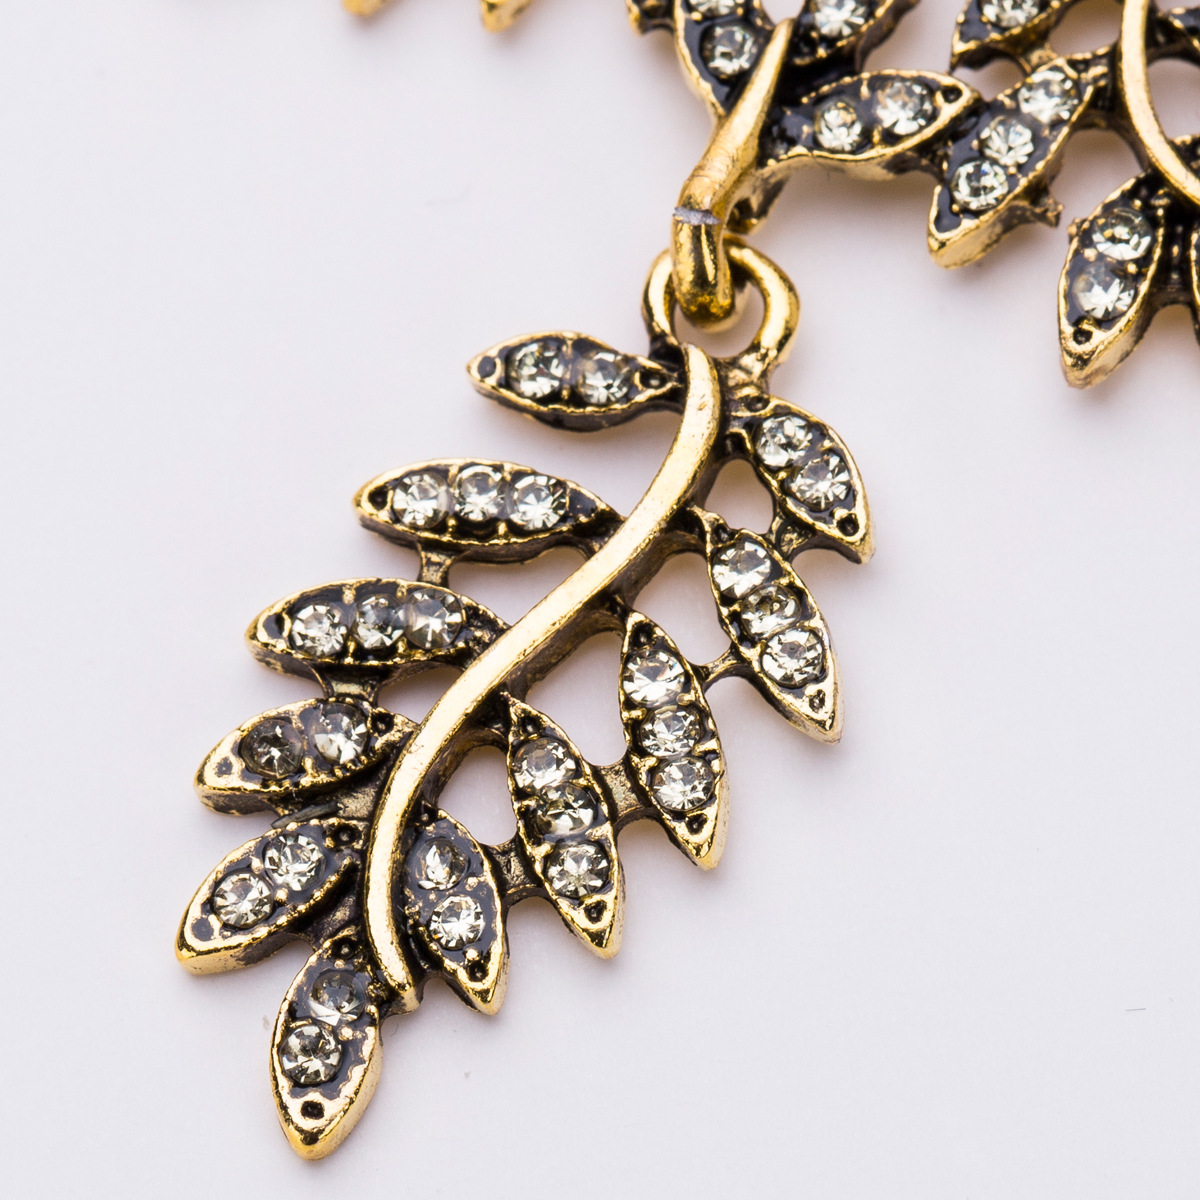 Alloy Fashion Geometric earring(Golden) NHJE1183-Golden